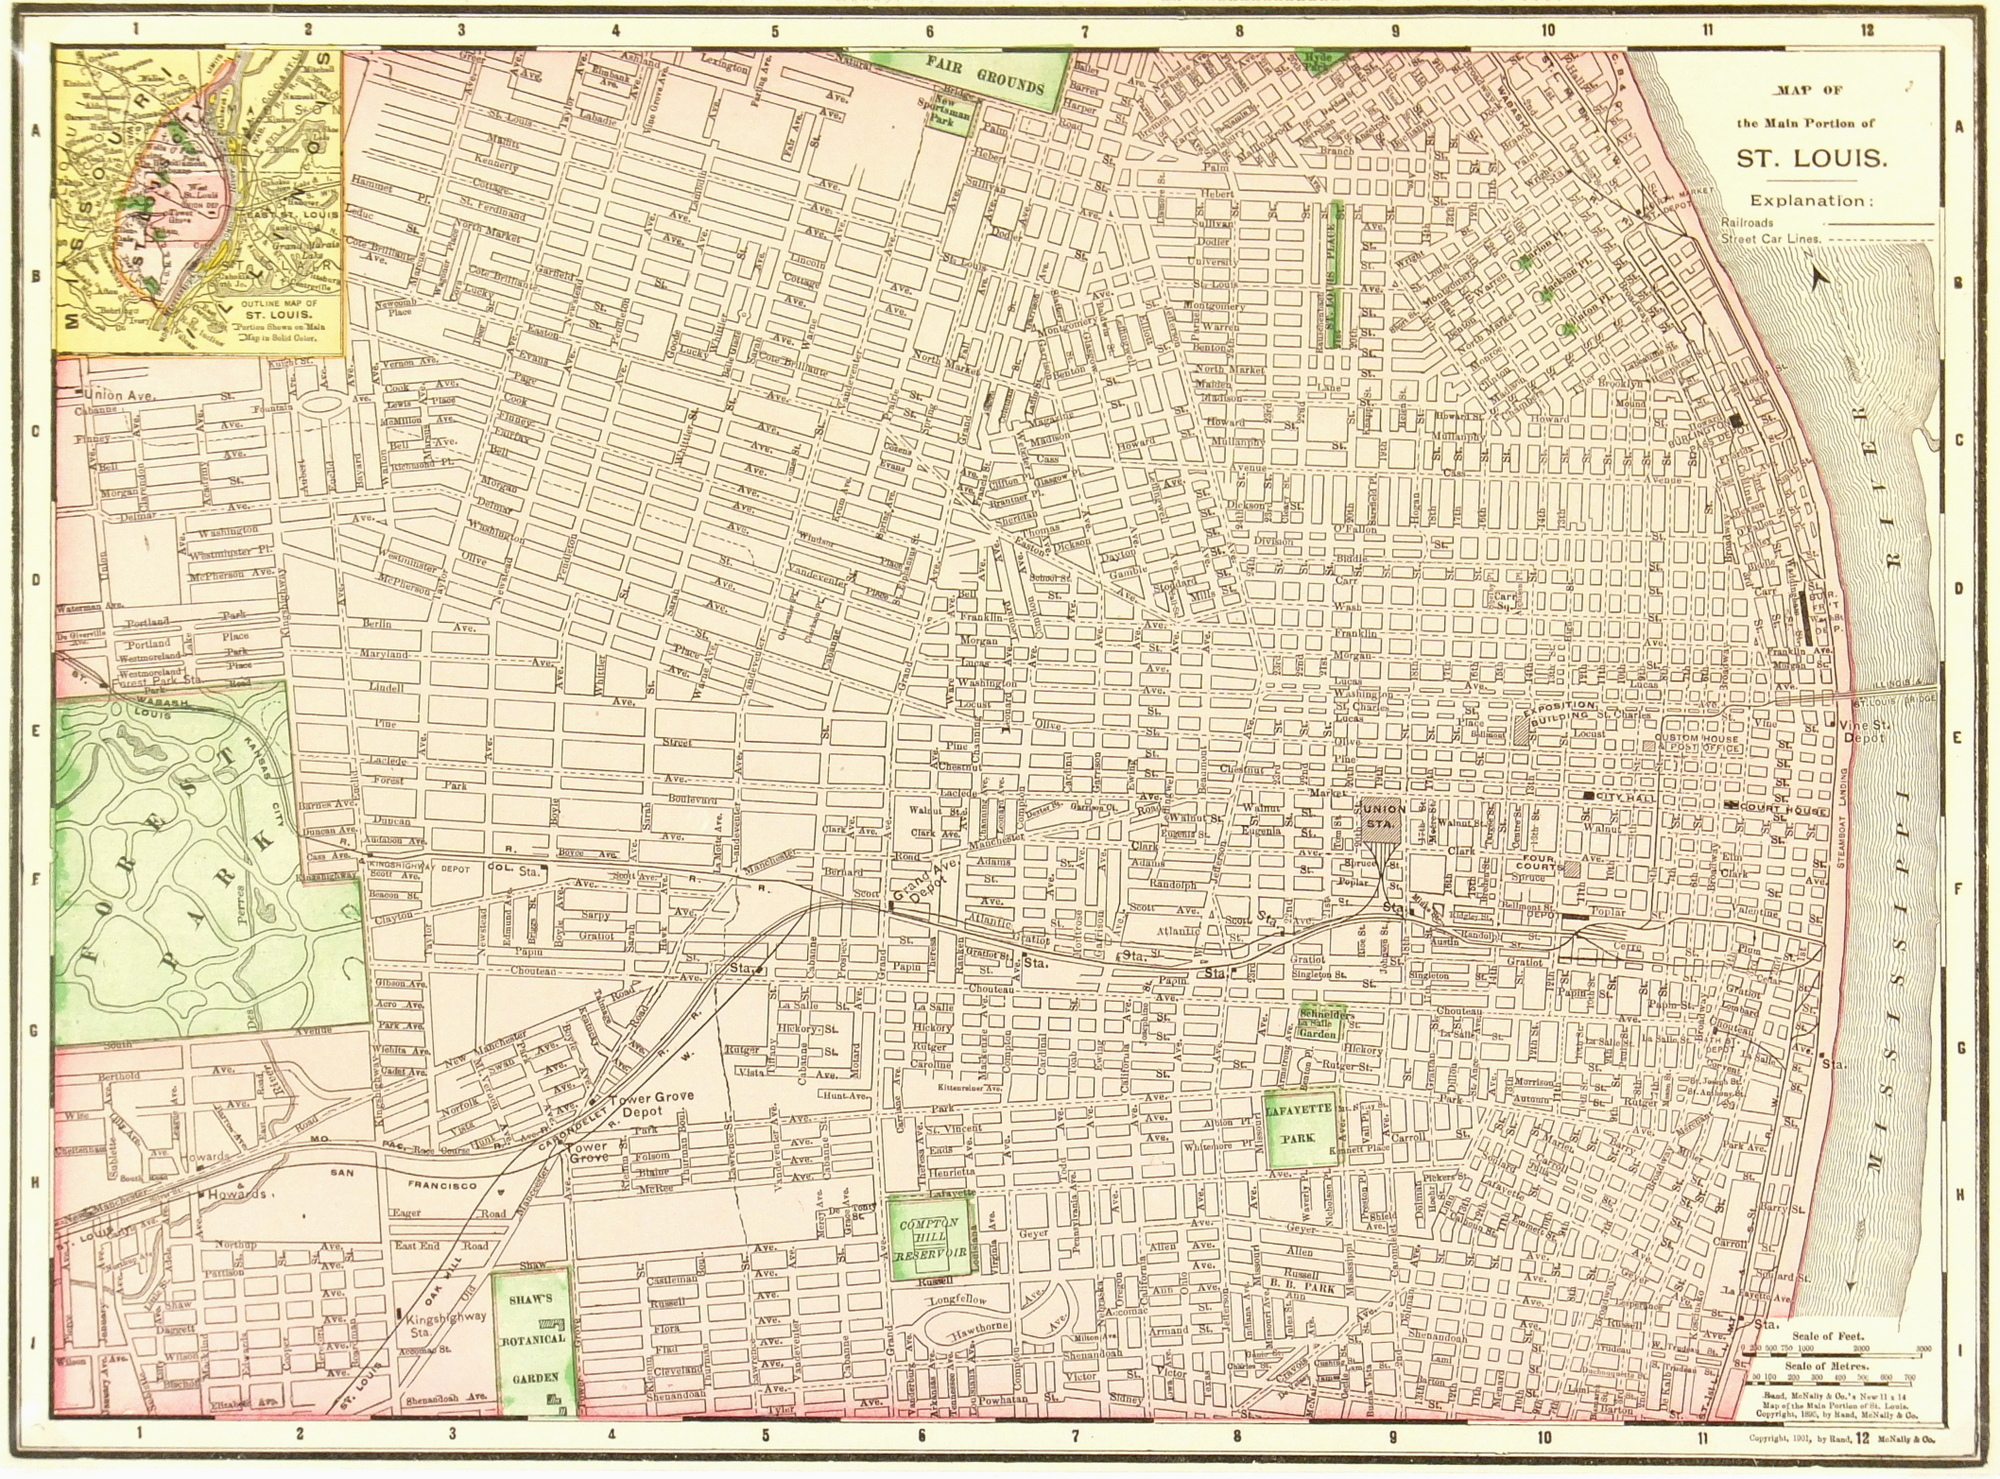 St. Louis, Missouri Map, 1901 - Original Art, Antique Maps & Prints